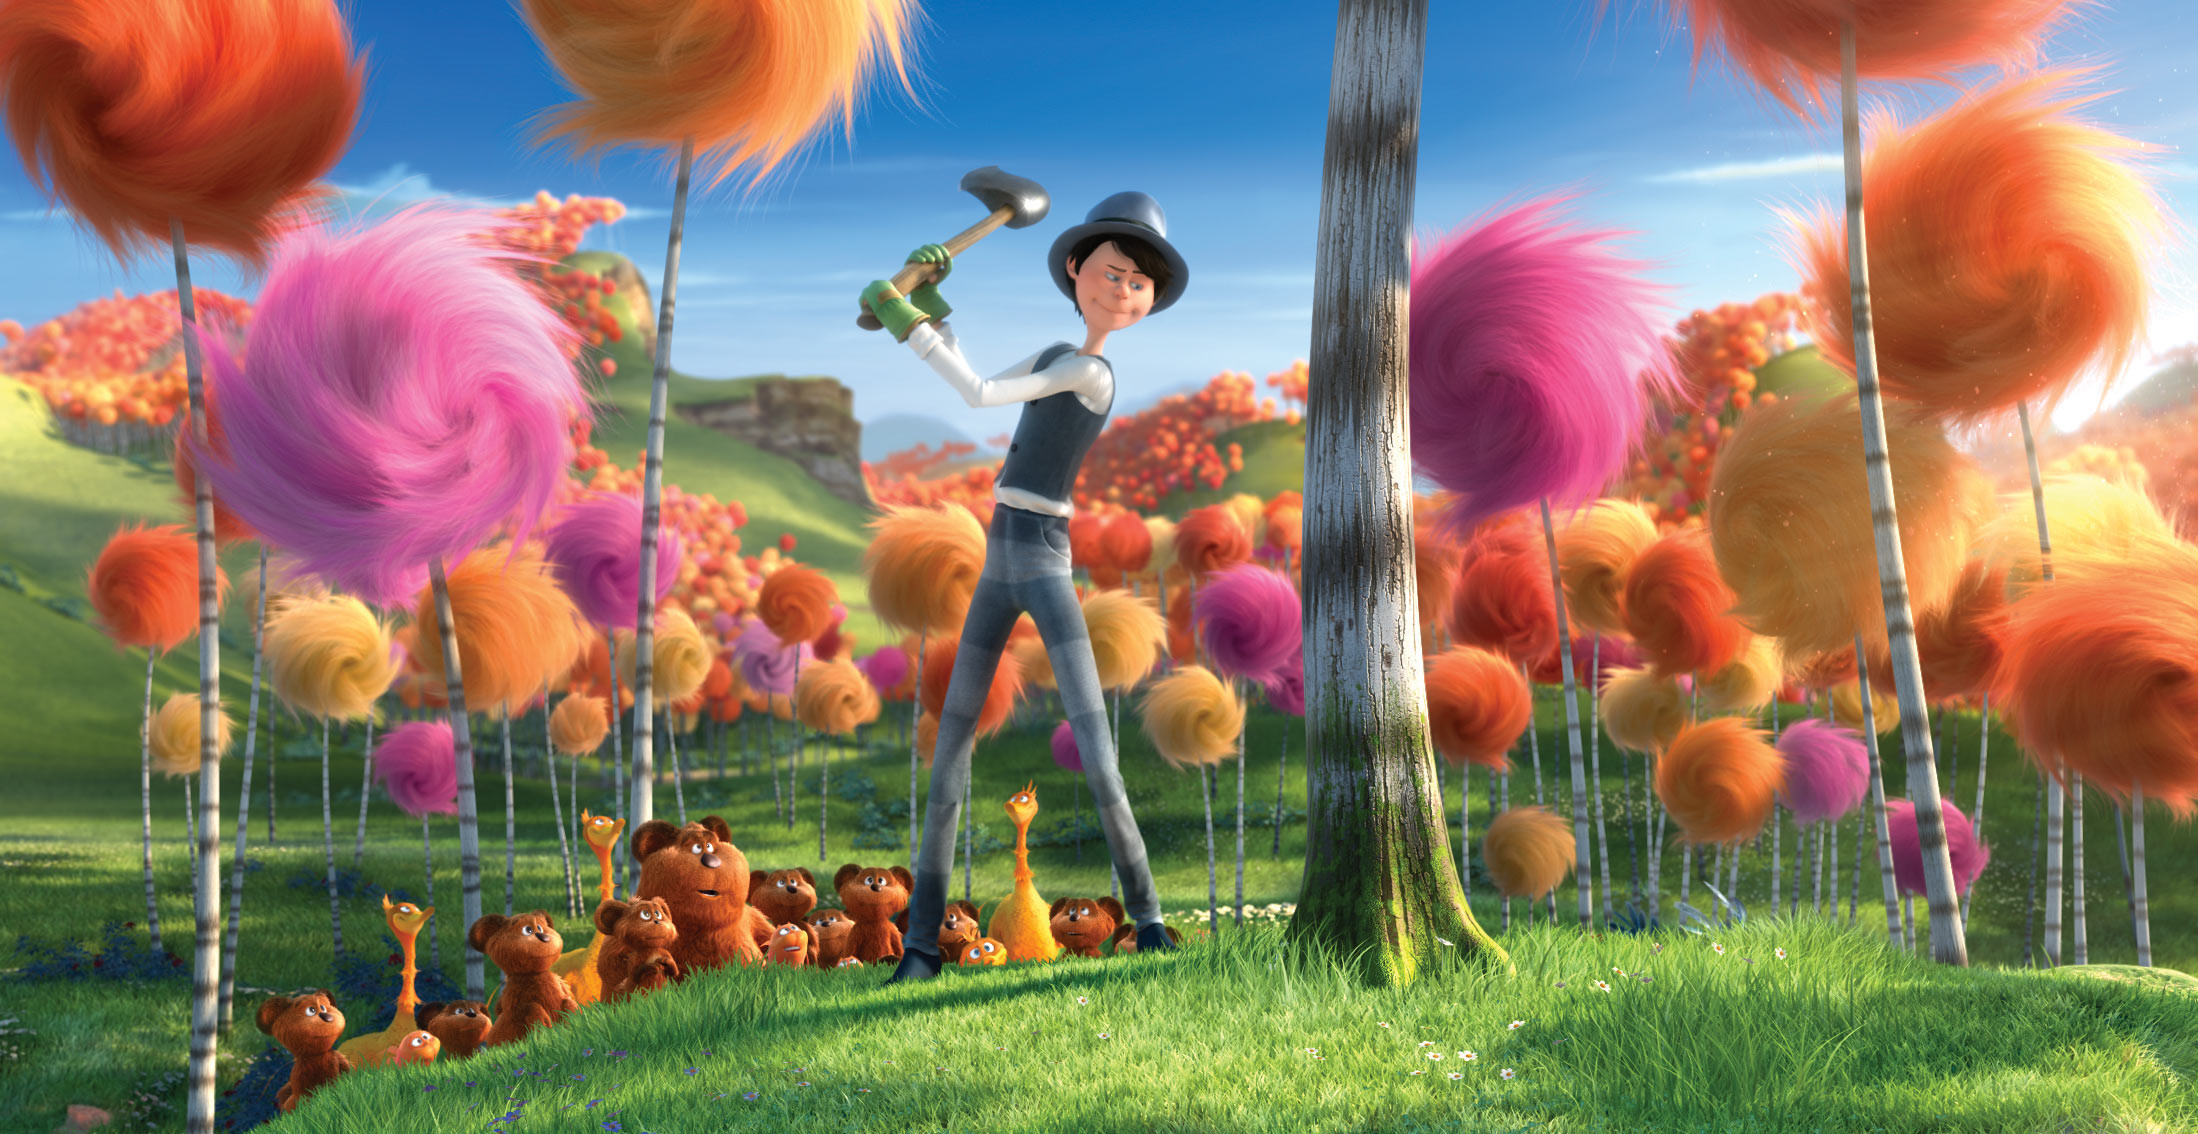 Res: 2198x1134, Once-ler cutting down a tree from Dr. Seuss The Lorax Movie 2012 wallpaper